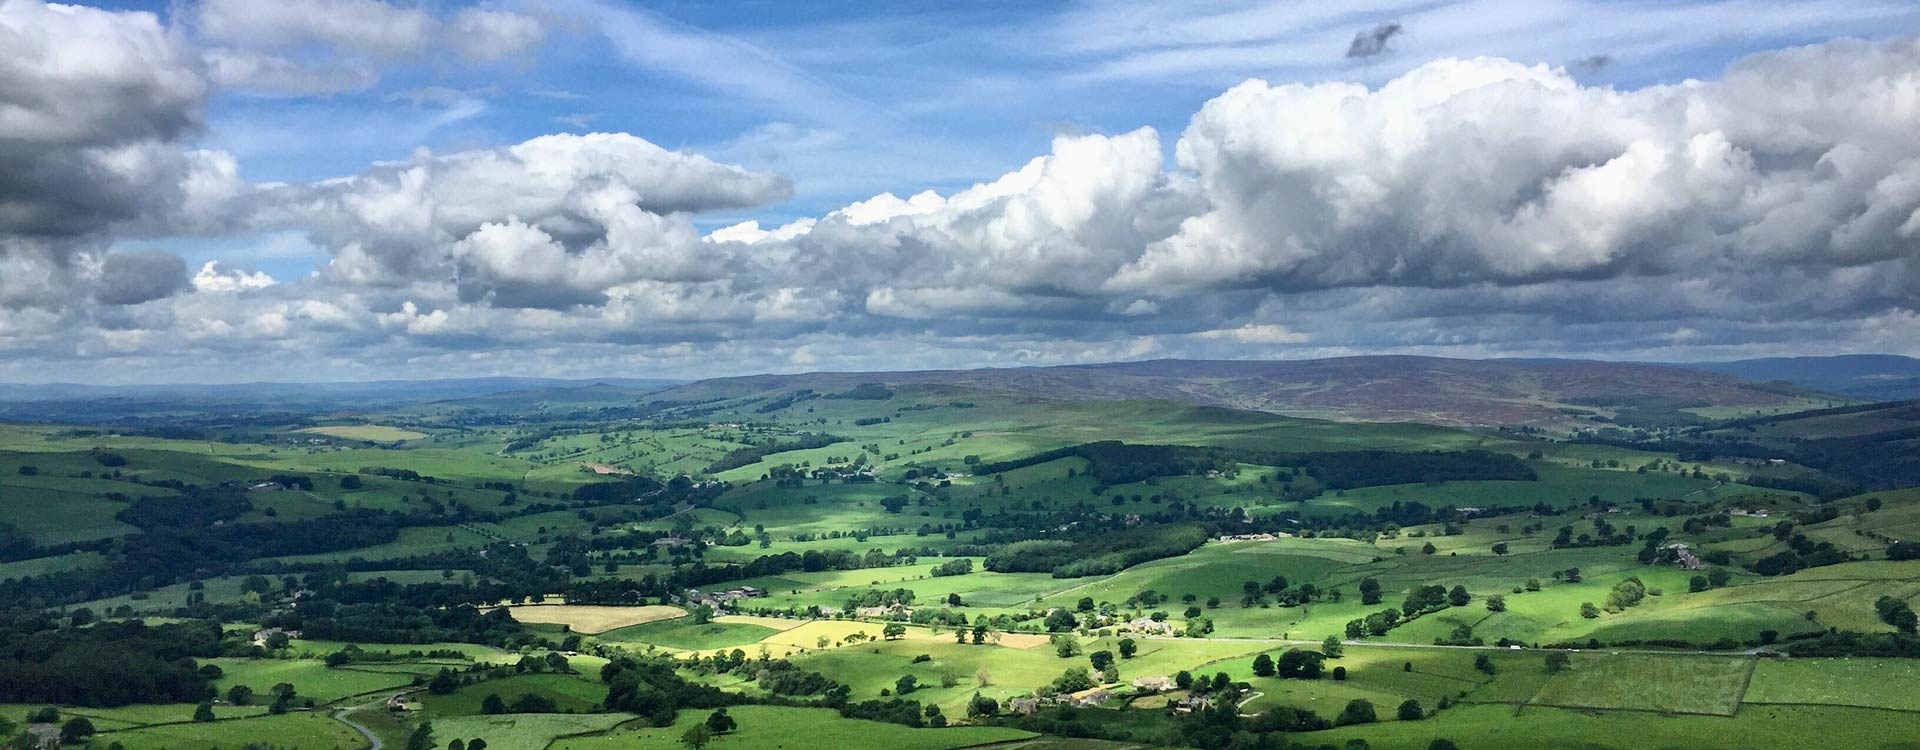 Views of the Yorkshire Moors from Beamsley Beacon. Dramatic cloudy sky, lots of green fields, trees and moorland in the distance.